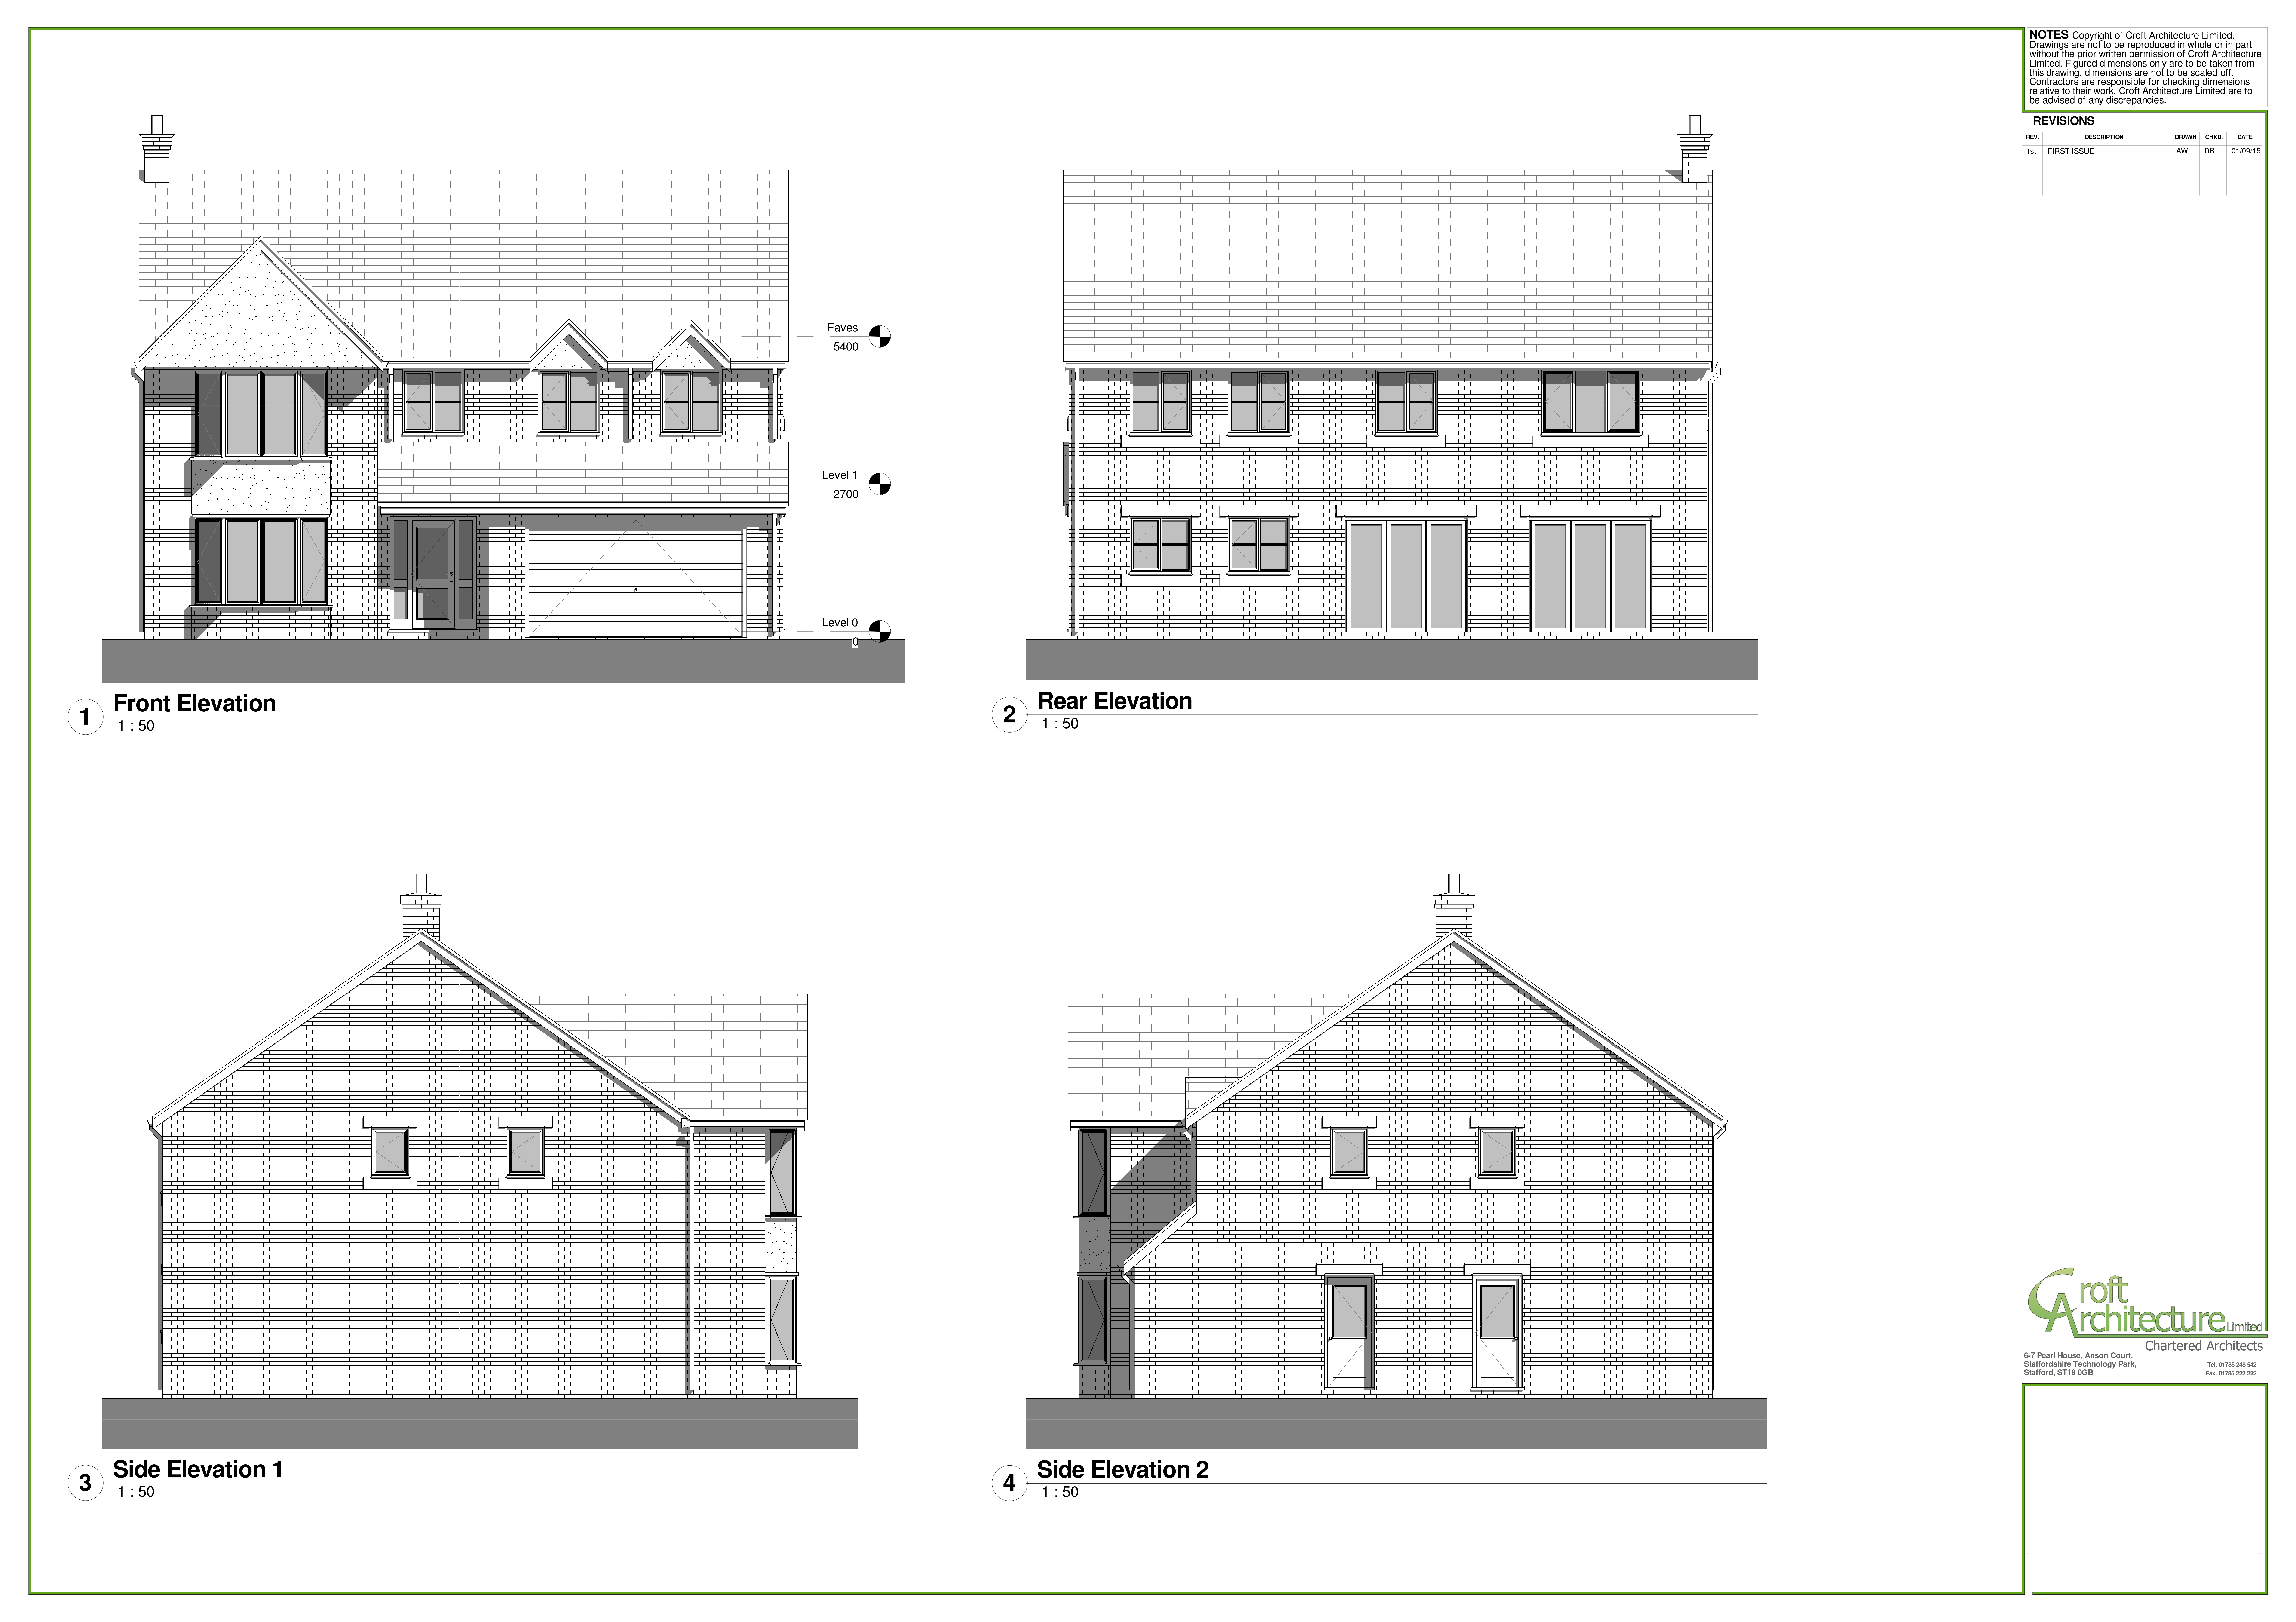 Croft Architecture House Type 4 Proposed Luxury Housing in Staffordshire